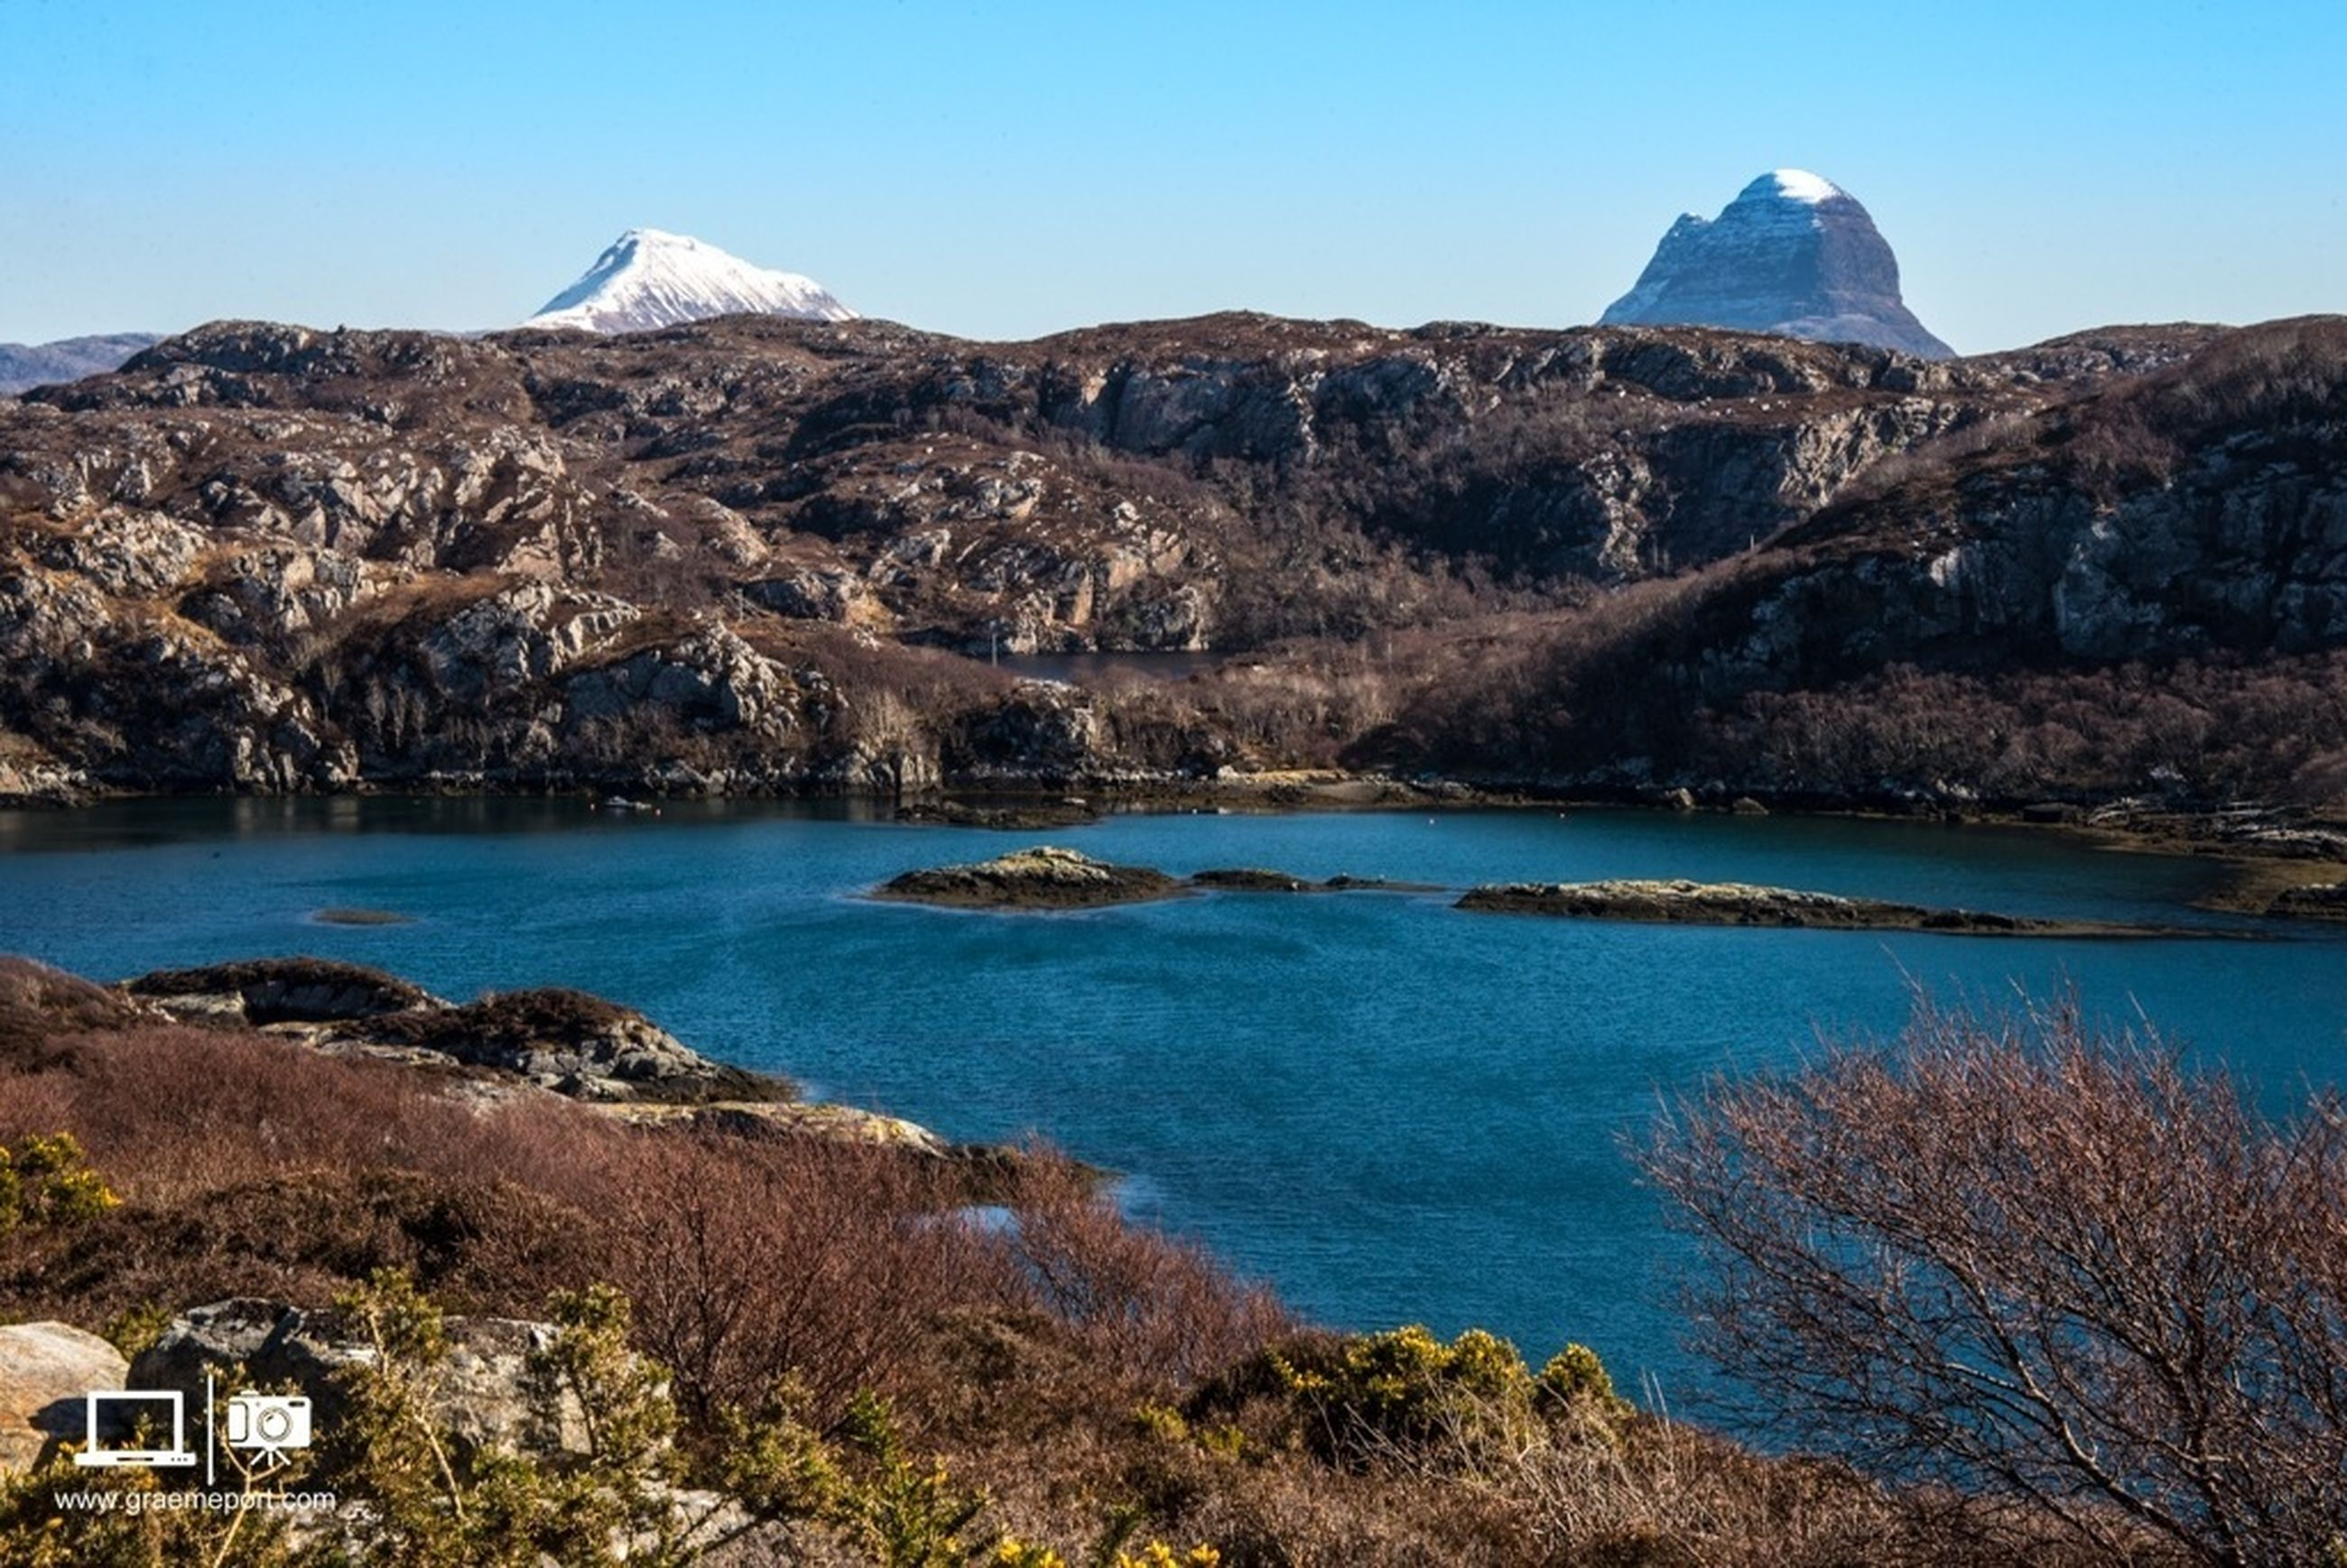 mountain, water, clear sky, blue, tranquil scene, scenics, tranquility, beauty in nature, mountain range, nature, rock - object, lake, rock formation, tree, sea, idyllic, non-urban scene, sky, day, sunlight